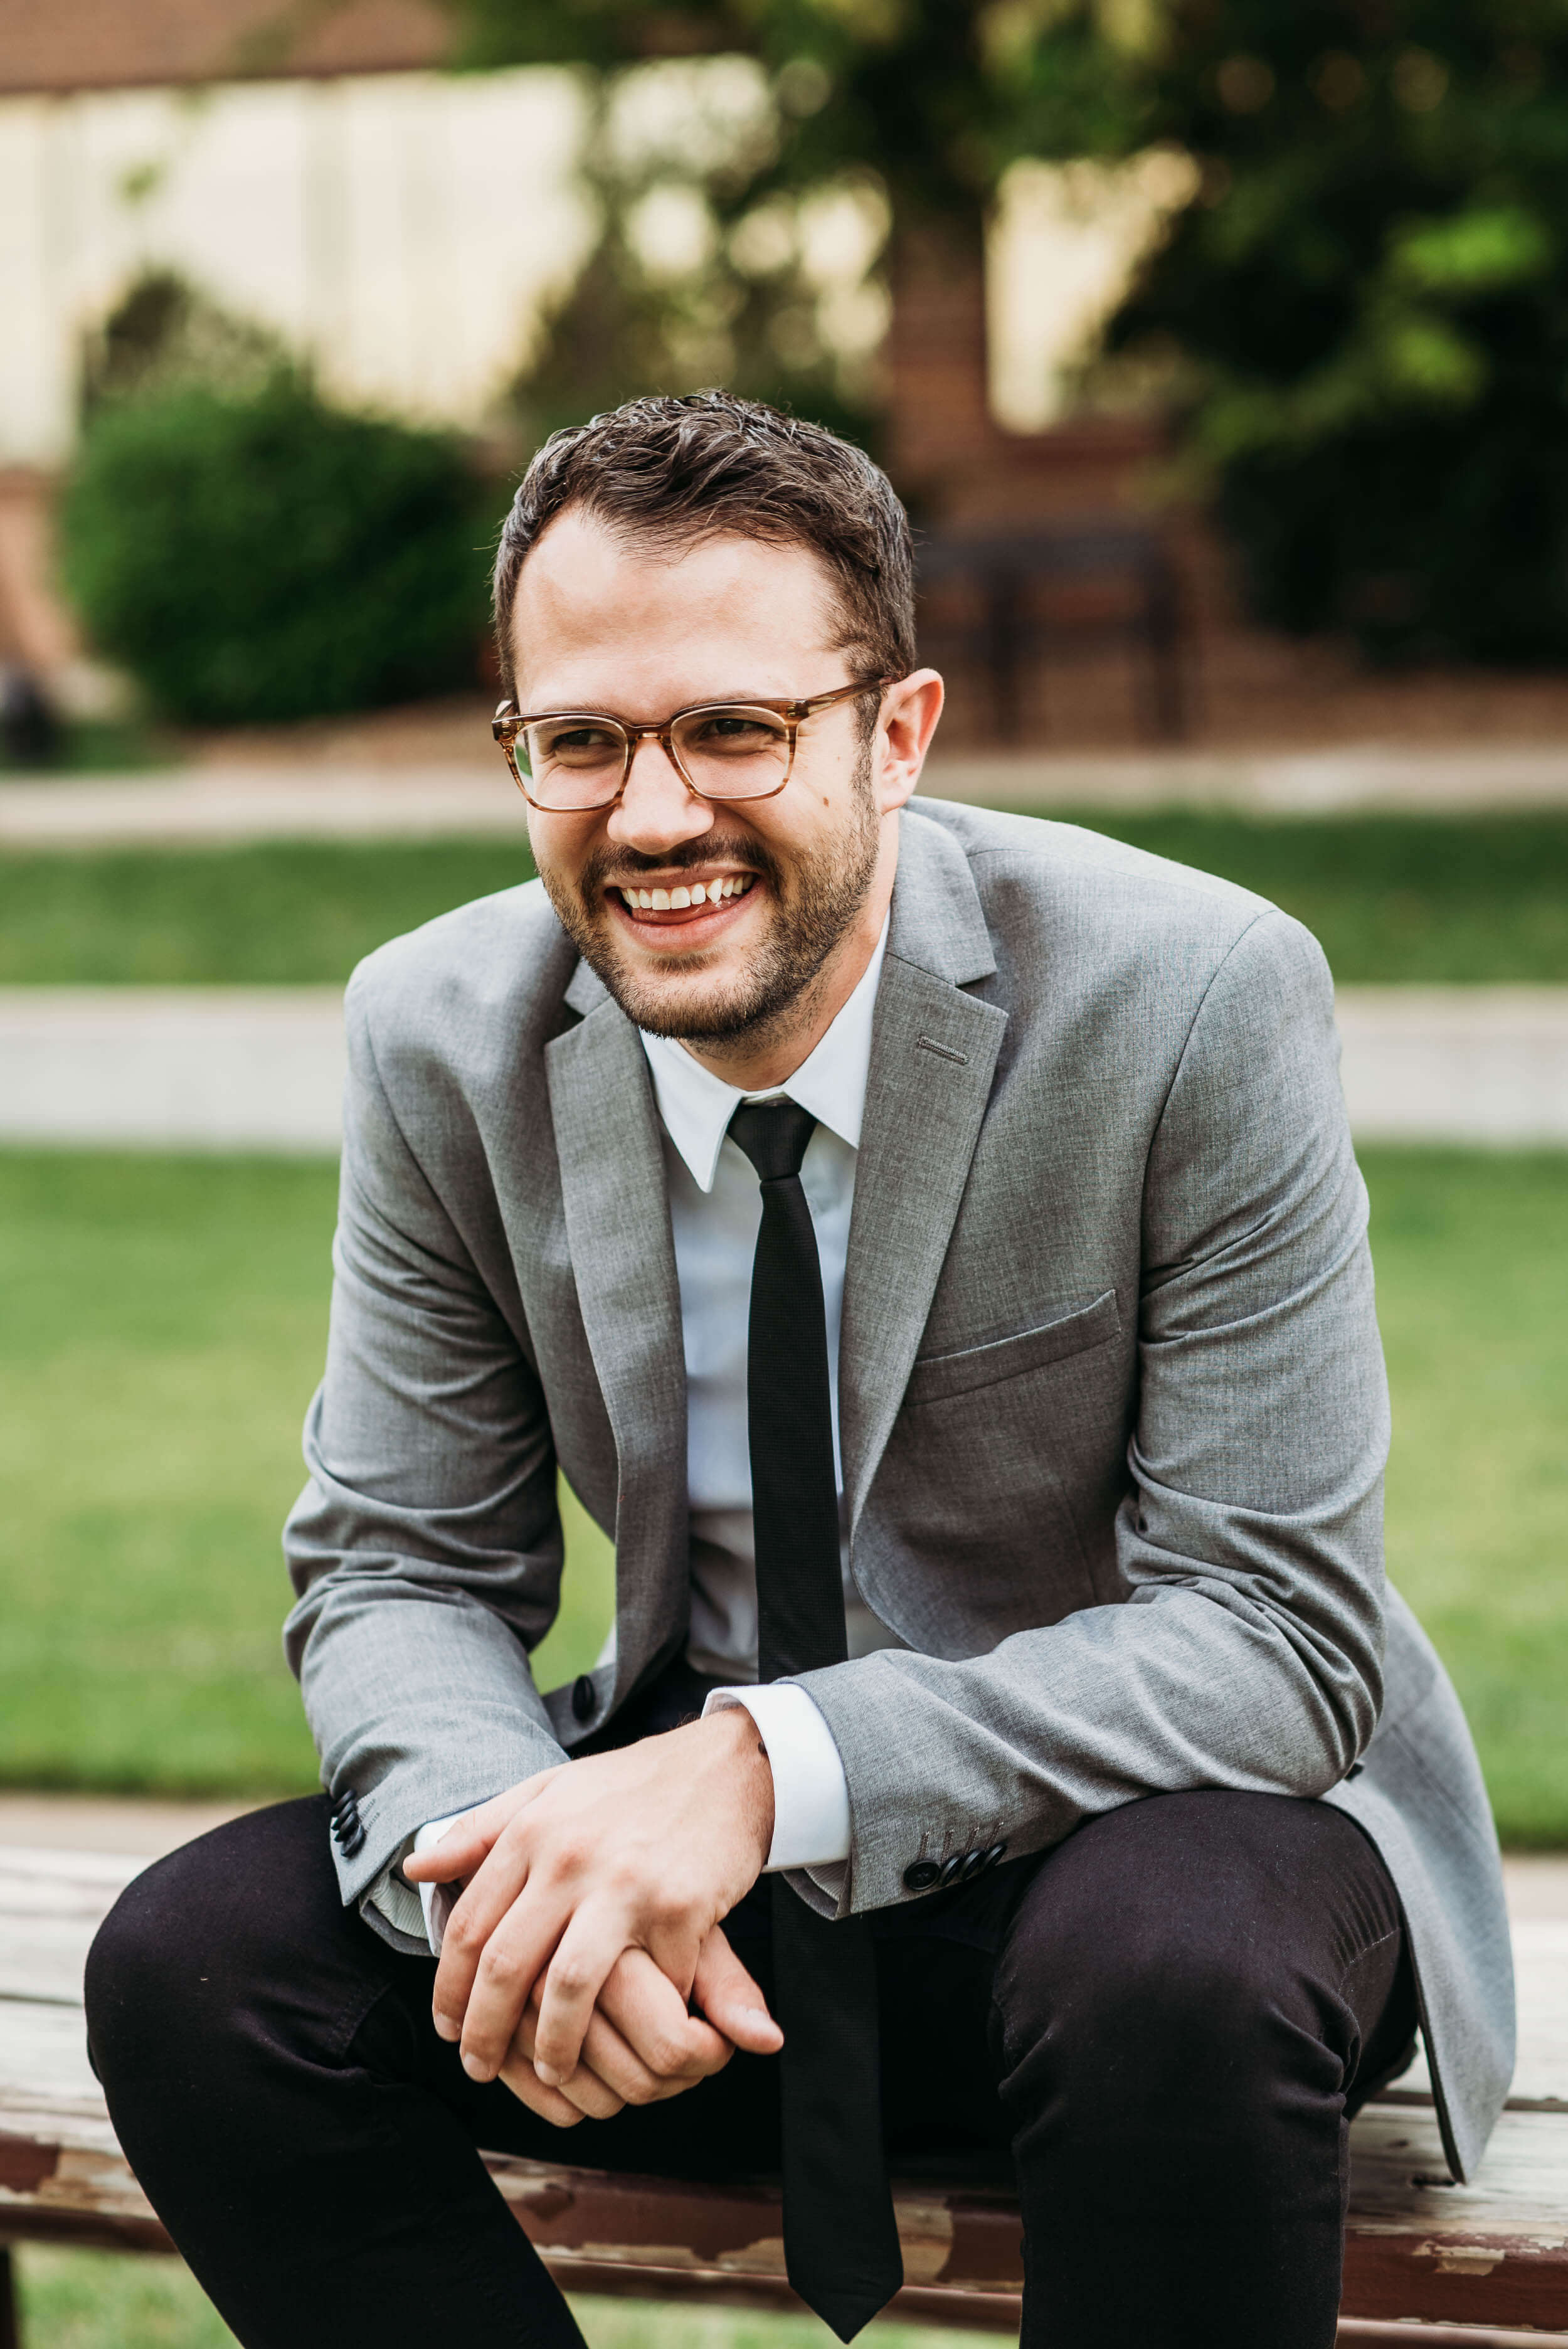 groom sitting on bench smiling